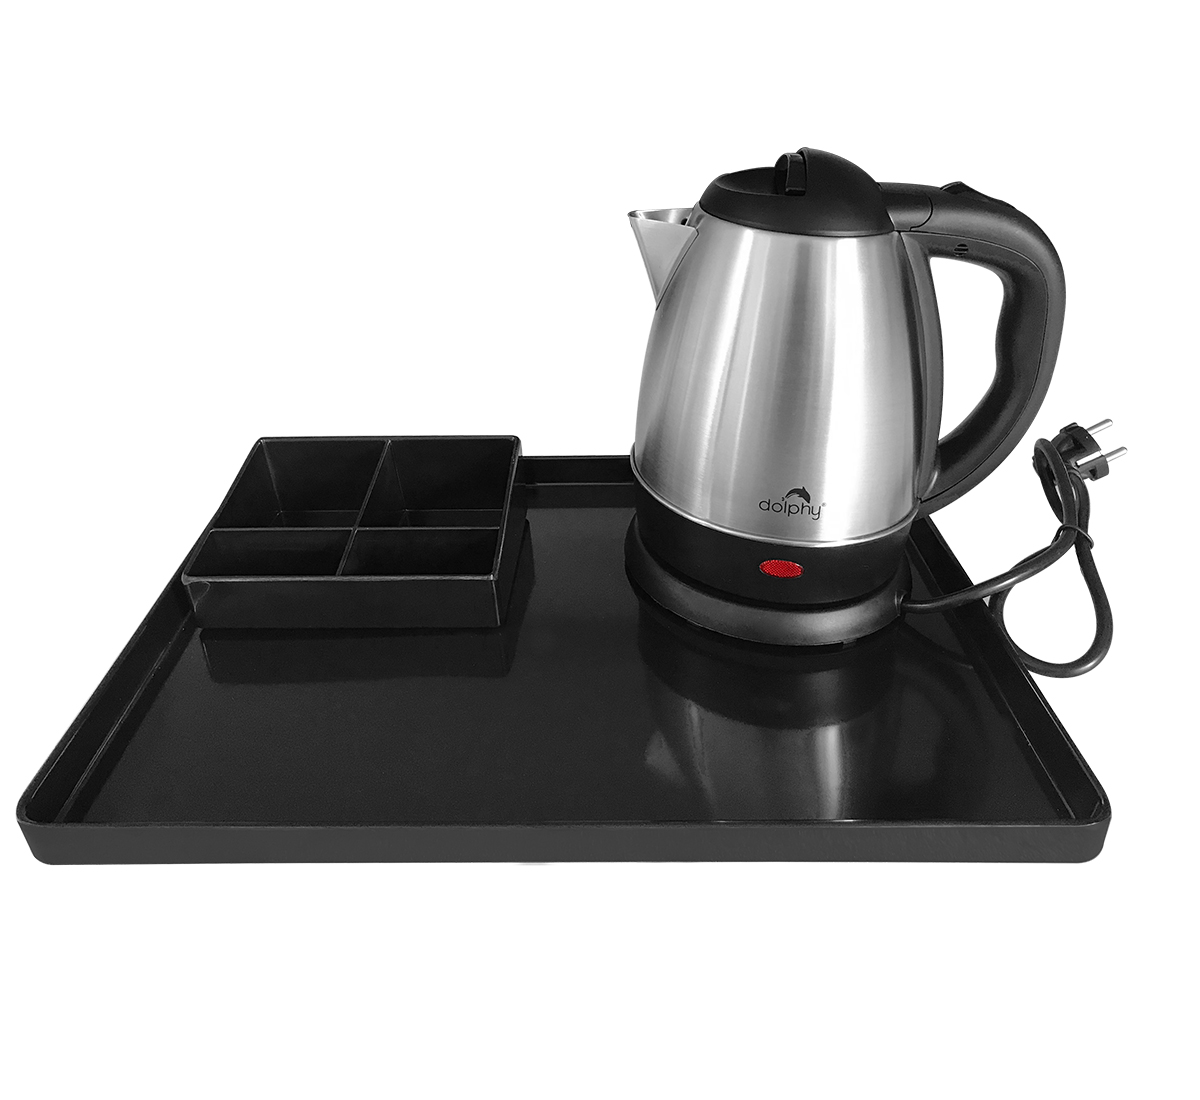 Stainless Steel Kettle with Tray Sets-DKTL0024